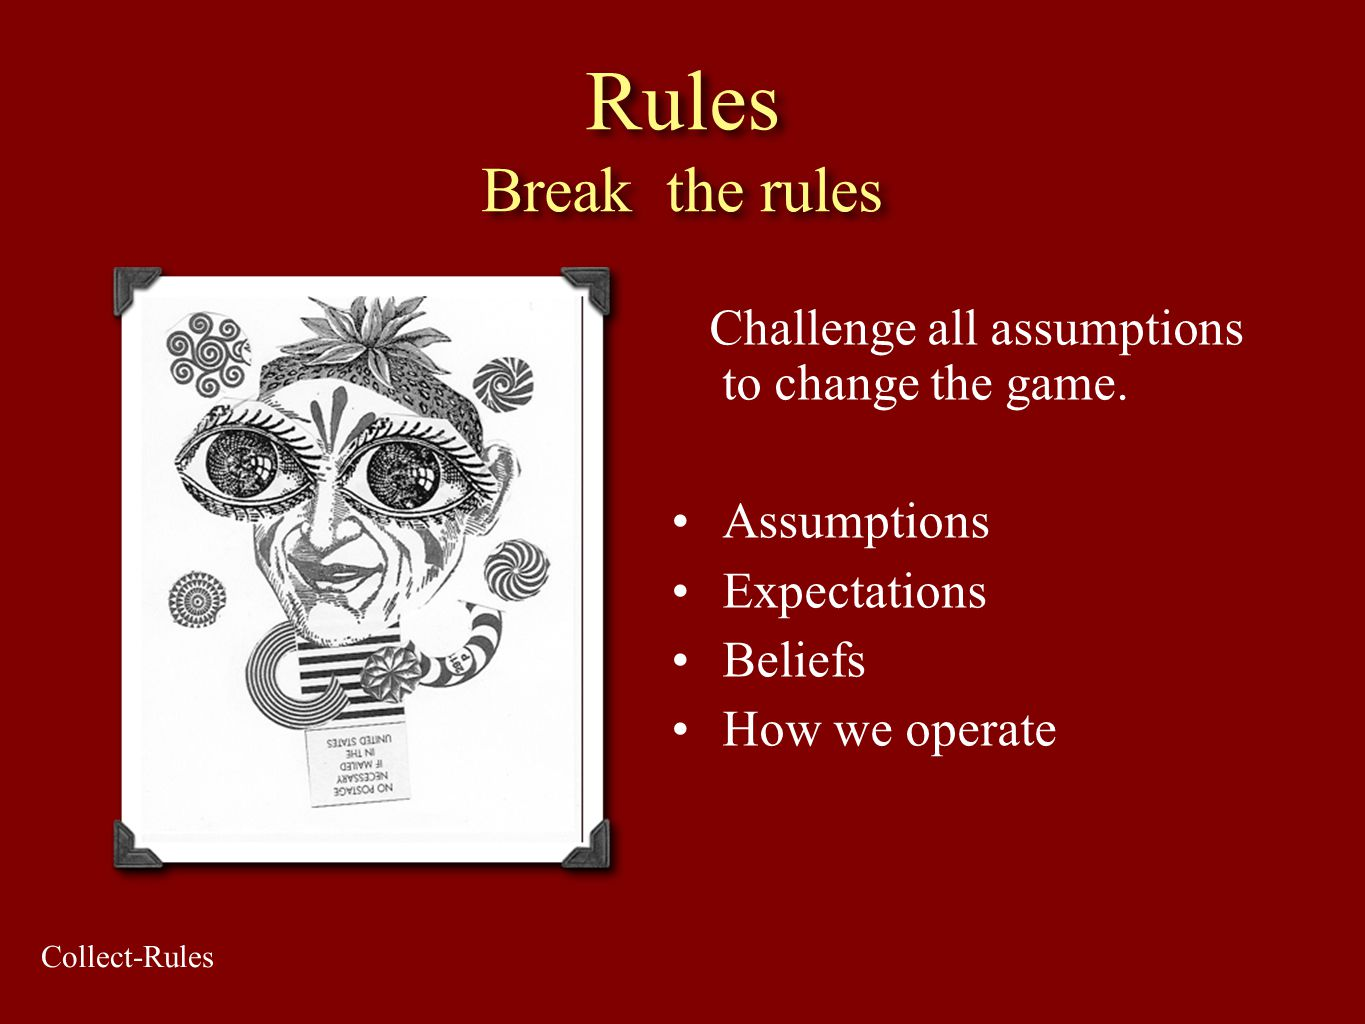 Rules Break the rules Challenge all assumptions to change the game.